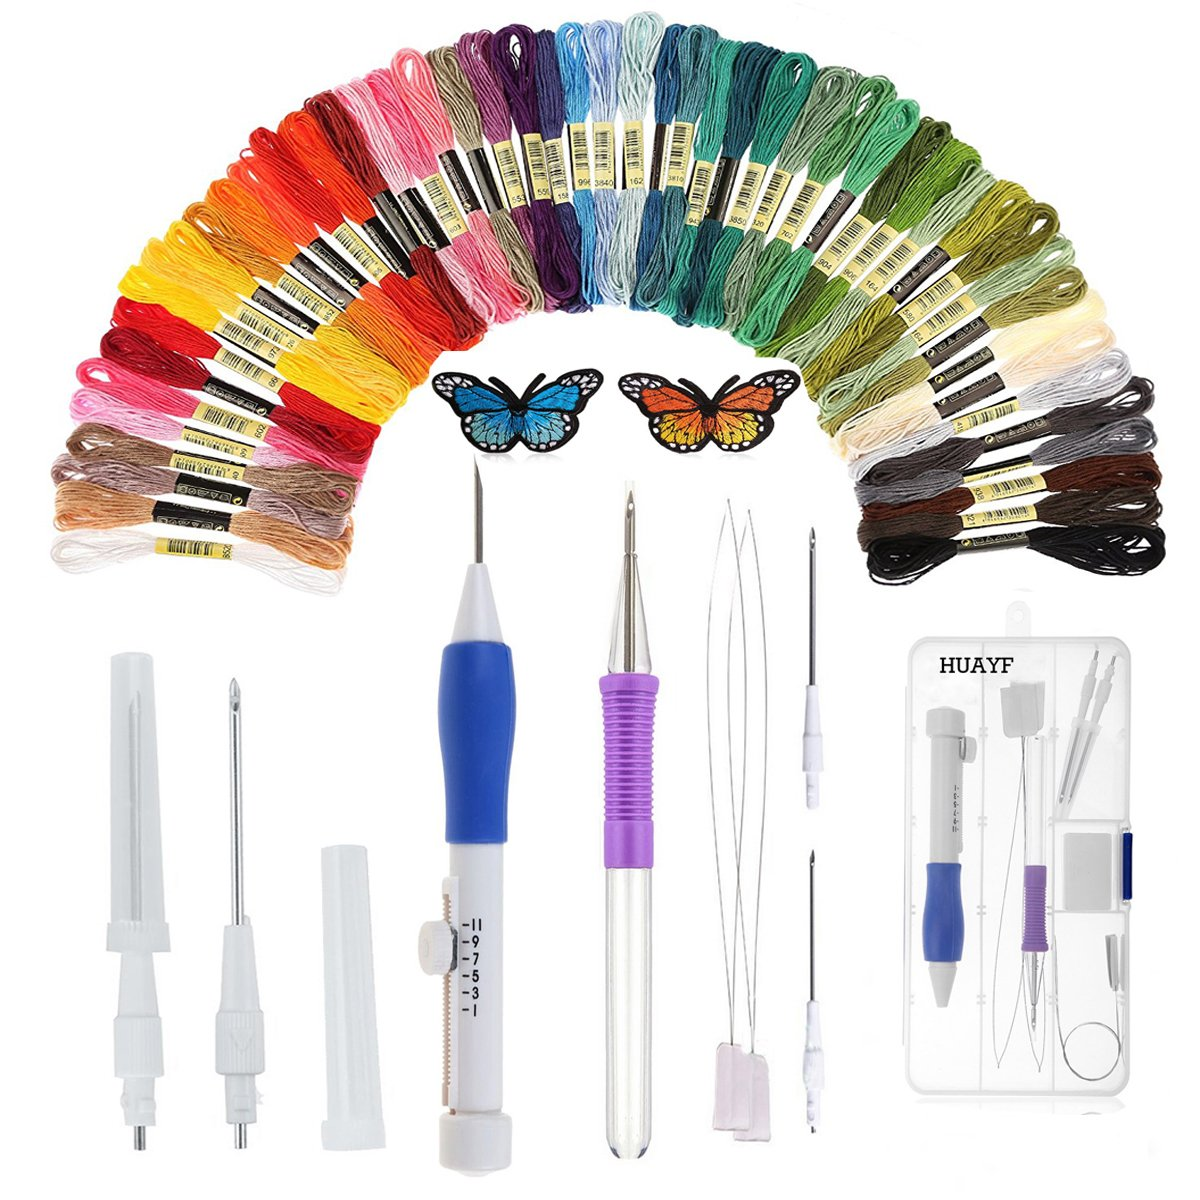 HUAYF Magic Embroidery Pen, Embroidery Pen Punch Needle Embroidered patterns punch needle Set Including 50 Color Threads for threaders DIY sewing 4336934579